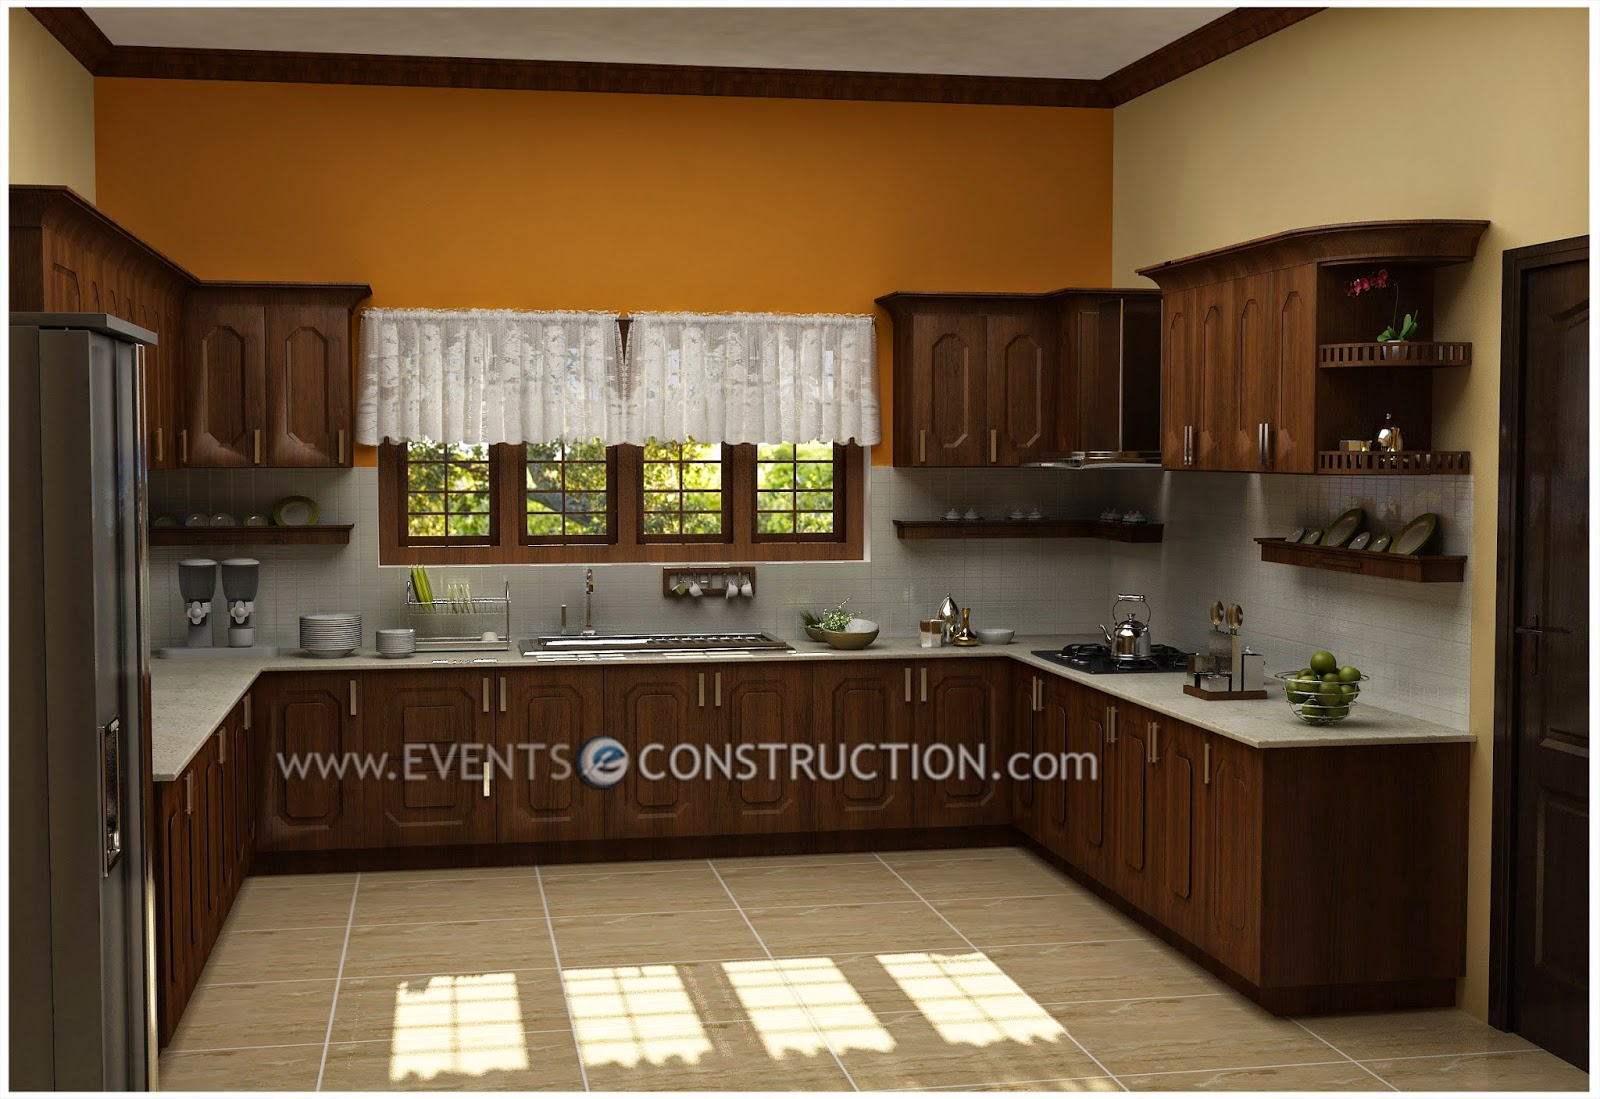 Kitchen Design Kerala Style Small Kitchen Design In Kerala Style And Kerala  Style Wooden Decor Part 6